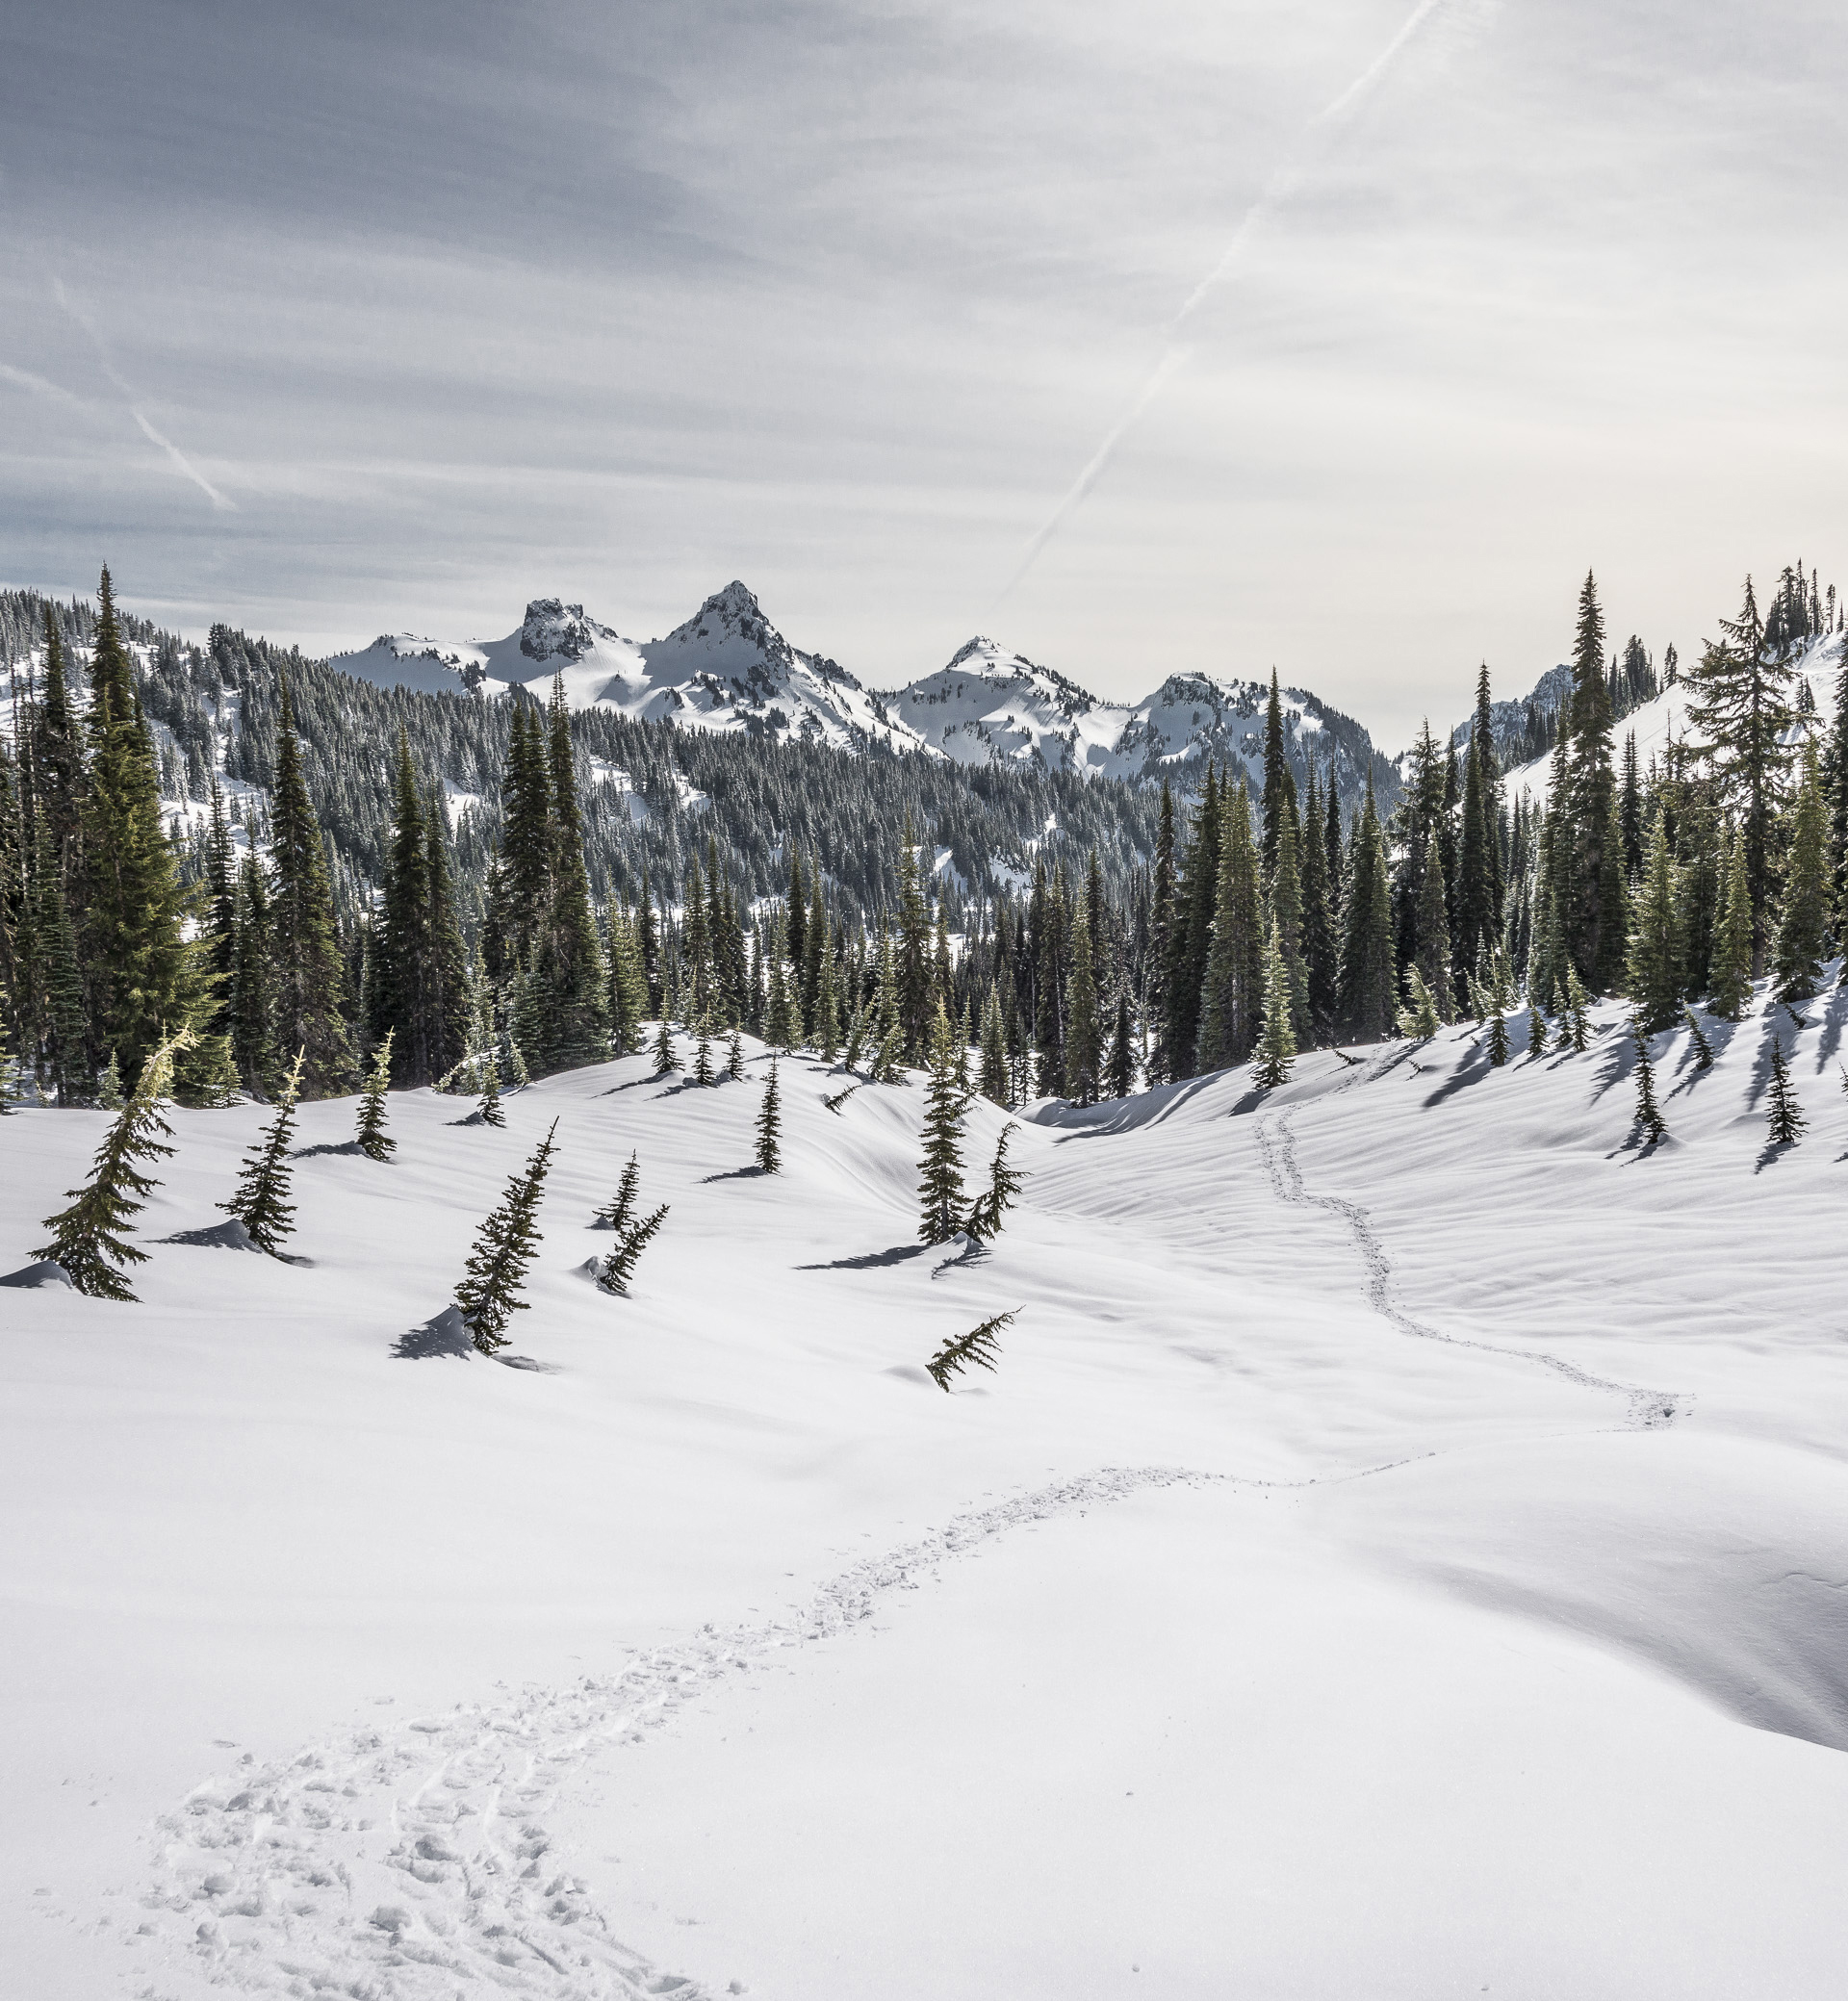 Snowshoe tracks leading into the valley below the Tatoosh Range, Mount Rainier National Park, WA